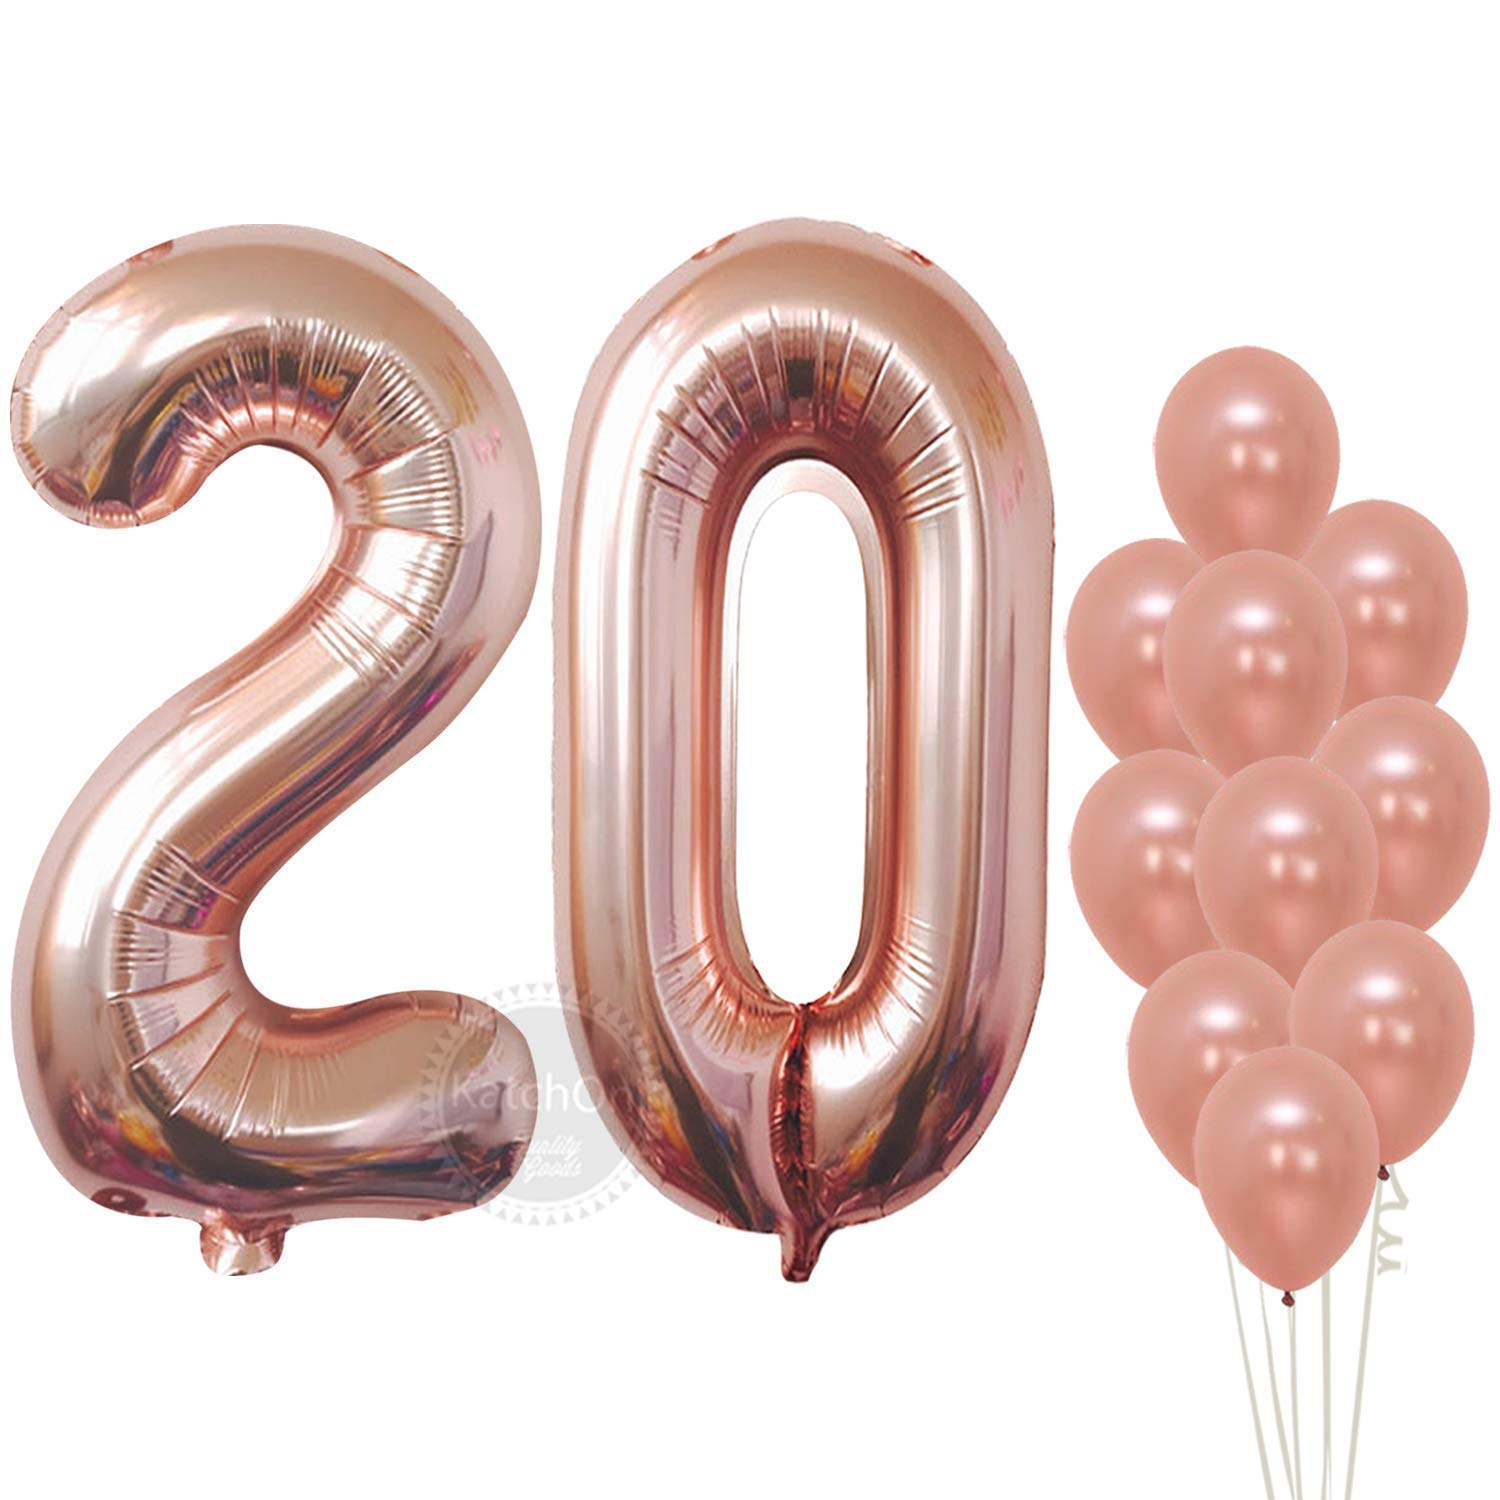 Rose Gold 20 Number Balloons - Large, 2 and 0 Mylar Rose Gold Balloons, 40 Inch | Extra Pack of 10 Latex Baloons, 12 Inch | Great 20th Birthday Party Decorations| 20 Year Old Rose Gold Party Supplies by KATCHON